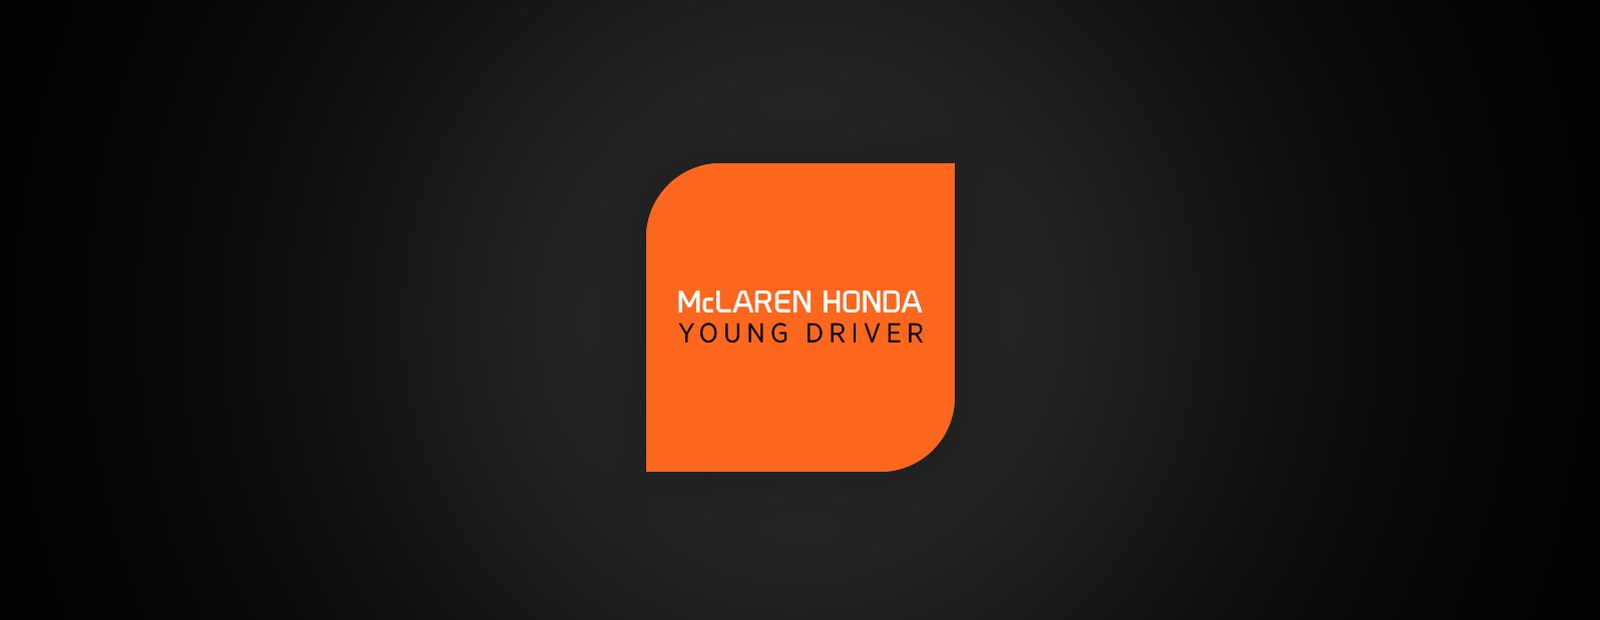 2017 McLaren-Honda Young Driver Programme members revealed